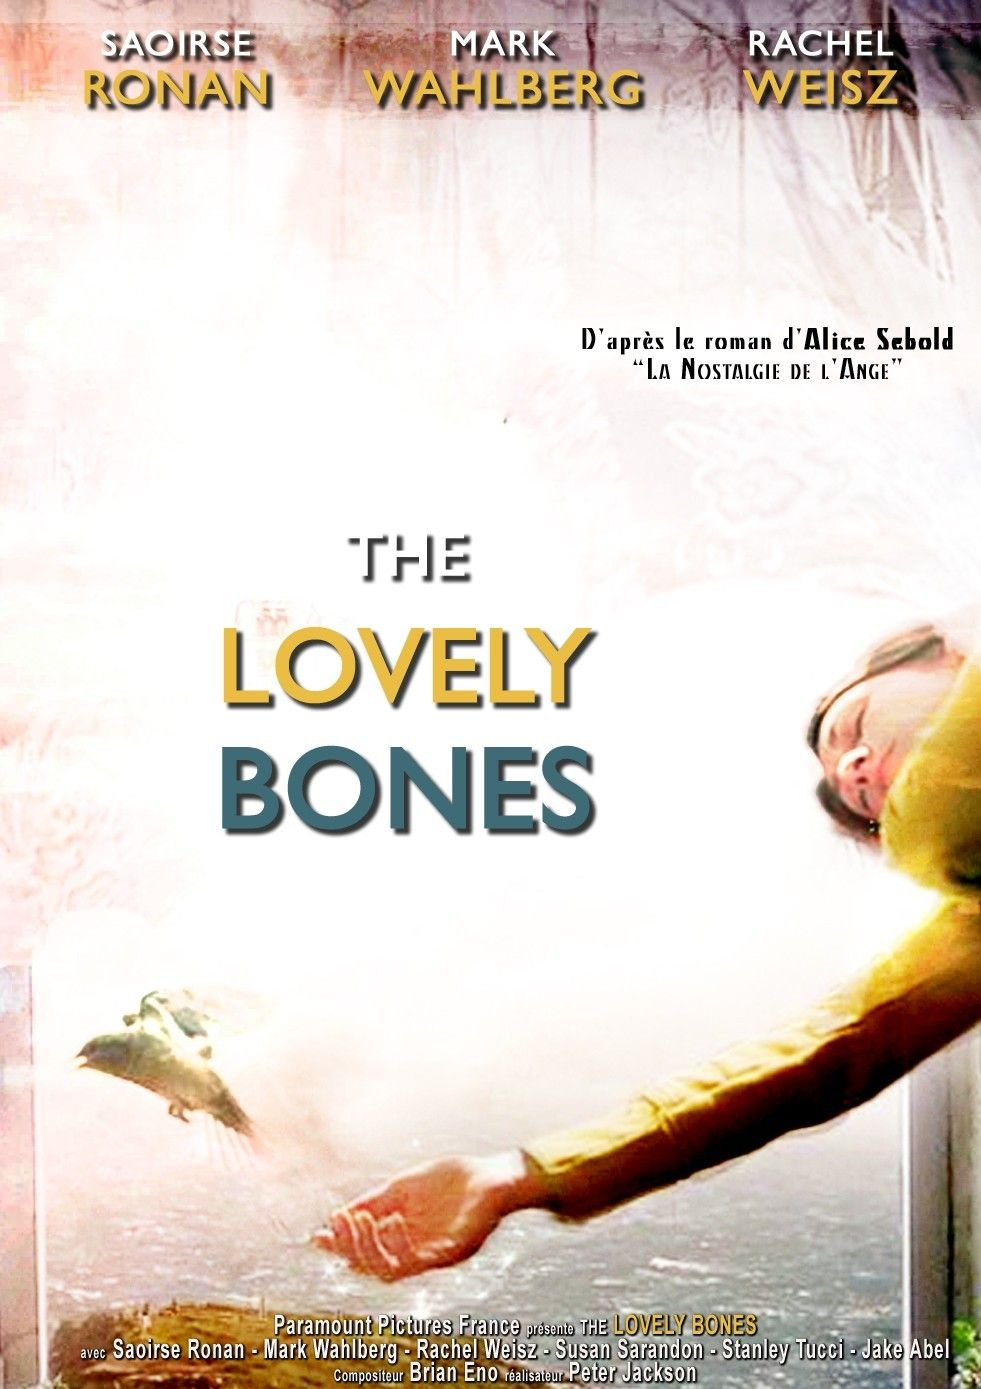 Pin By Dany Riggs On Prints The Lovely Bones Good Movies I Love Books